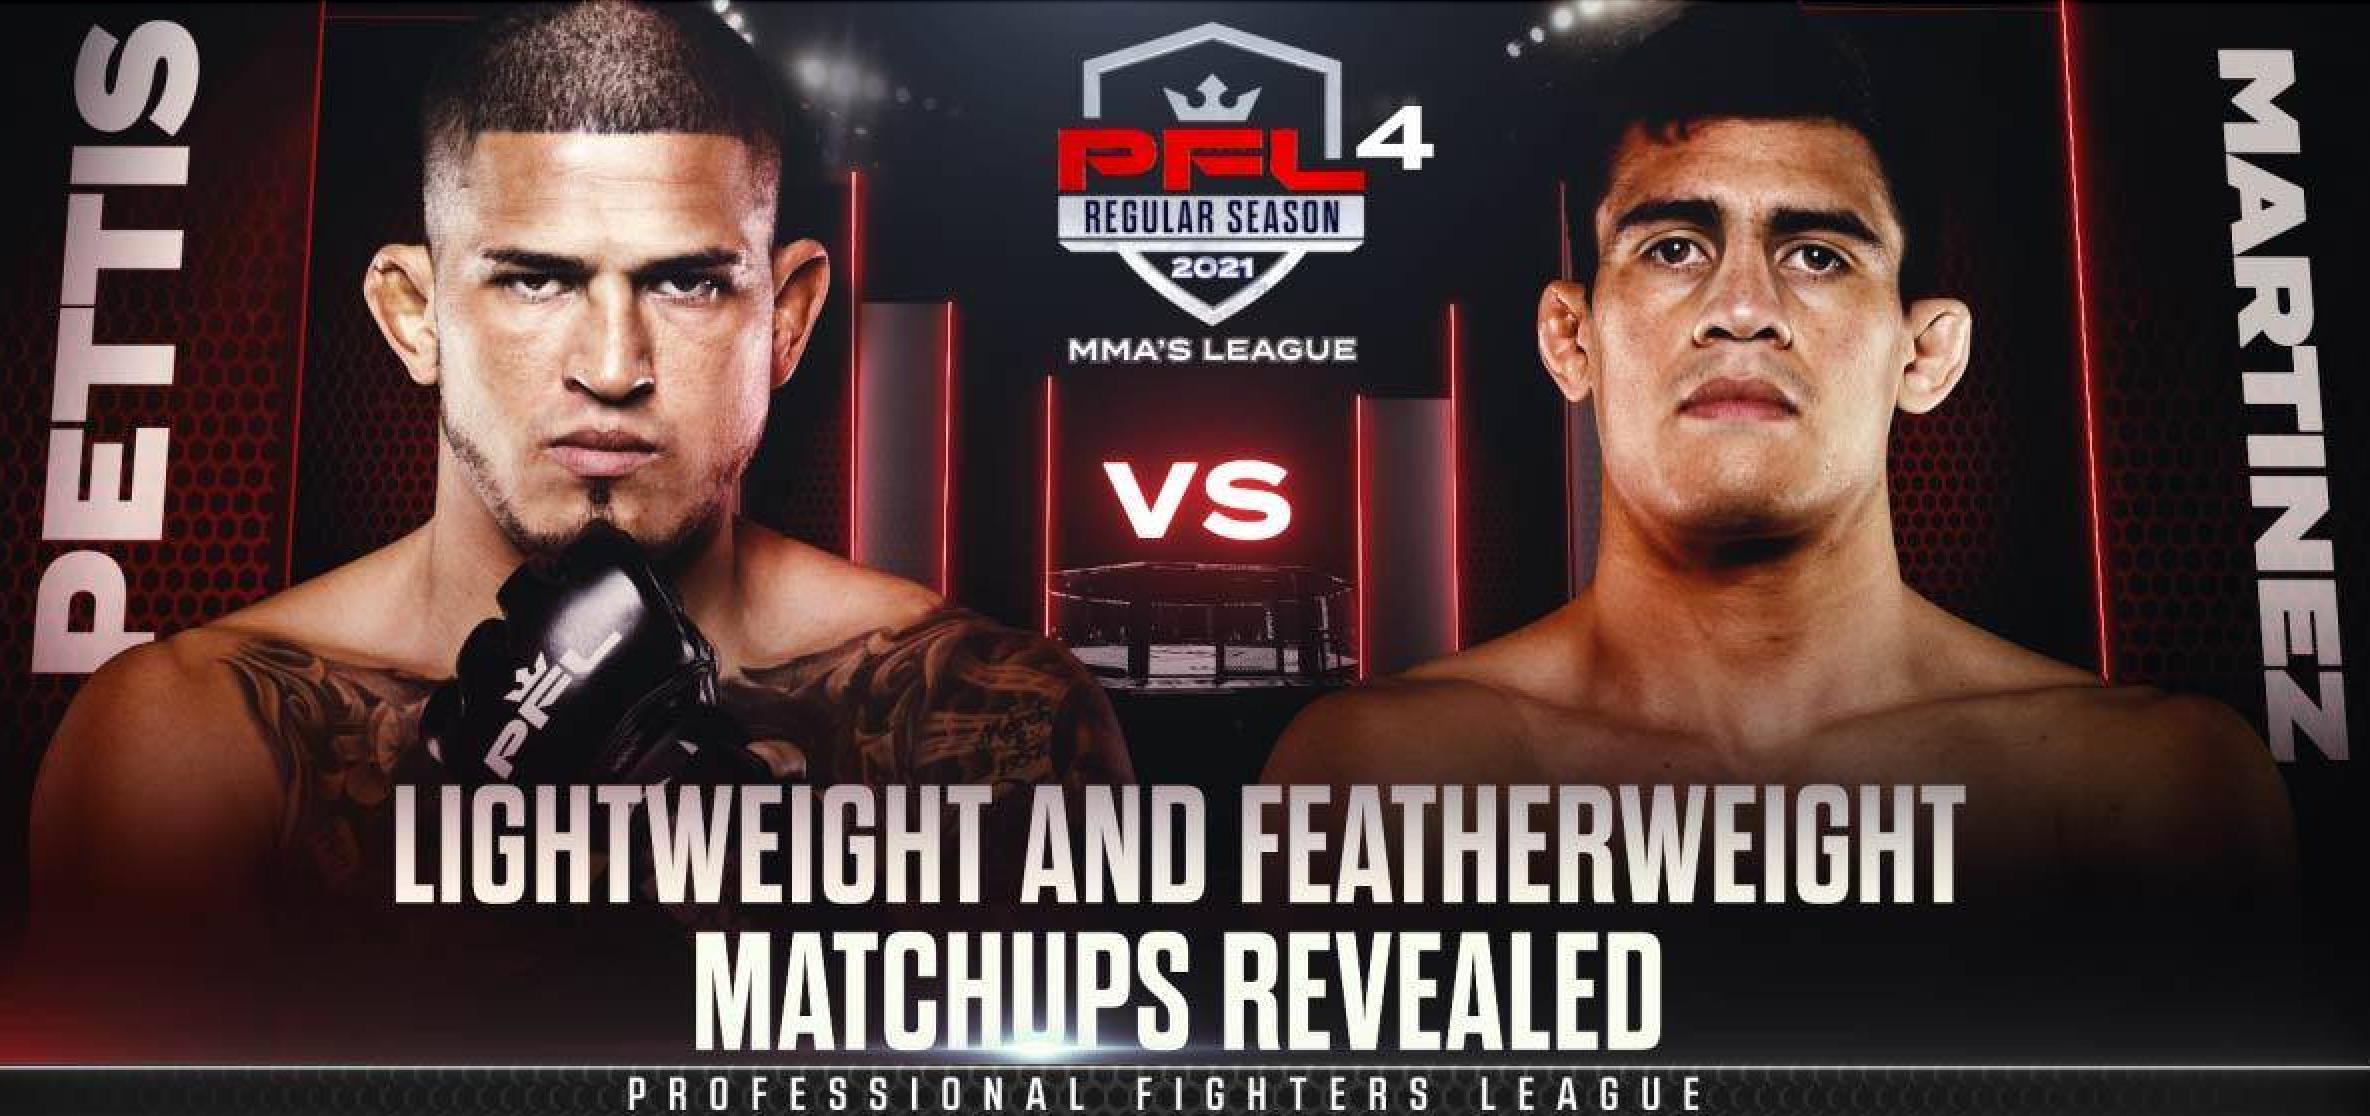 PROFESSIONAL FIGHTERS LEAGUE ANNOUNCES FINAL REGULAR SEASON MMA MATCHUPS FOR FEATHERWEIGHTS AND LIGHTWEIGHTS ON JUNE 10